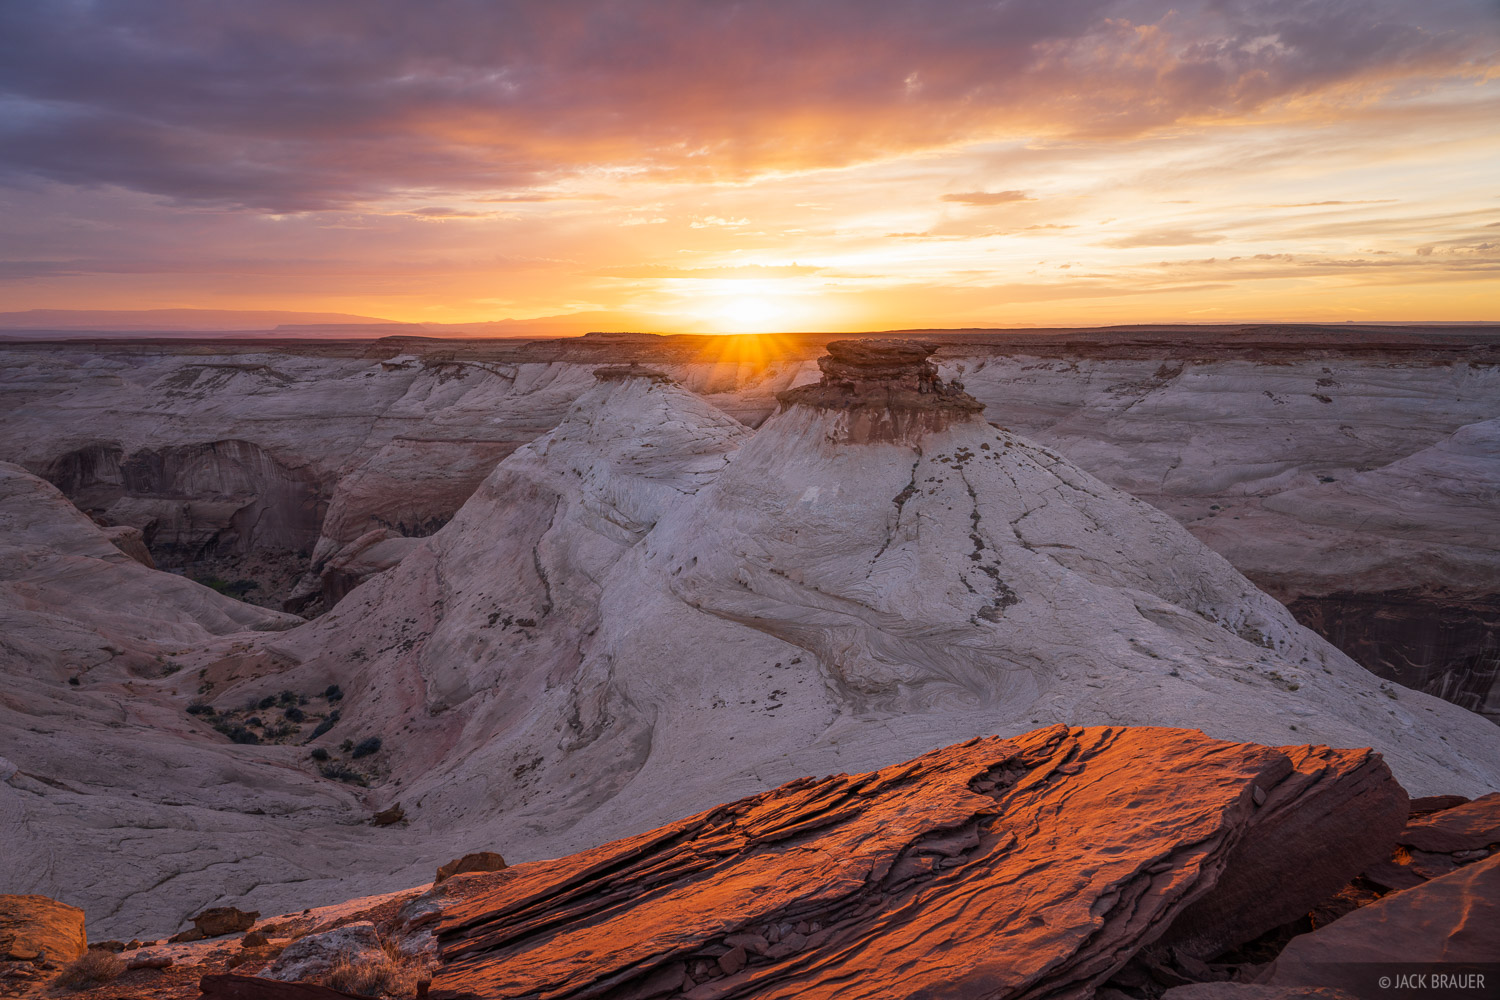 A fantastic sunset over slickrock sandstone formations in the Robbers Roost Country, a remote region of southern Utah.